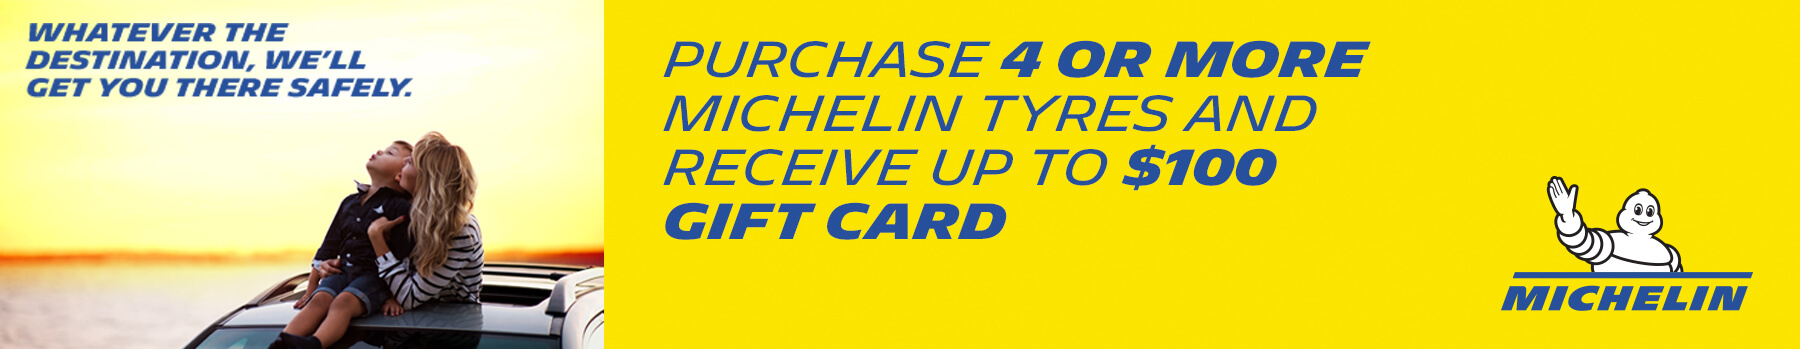 Donnellans - $100 Gift Card Michelin